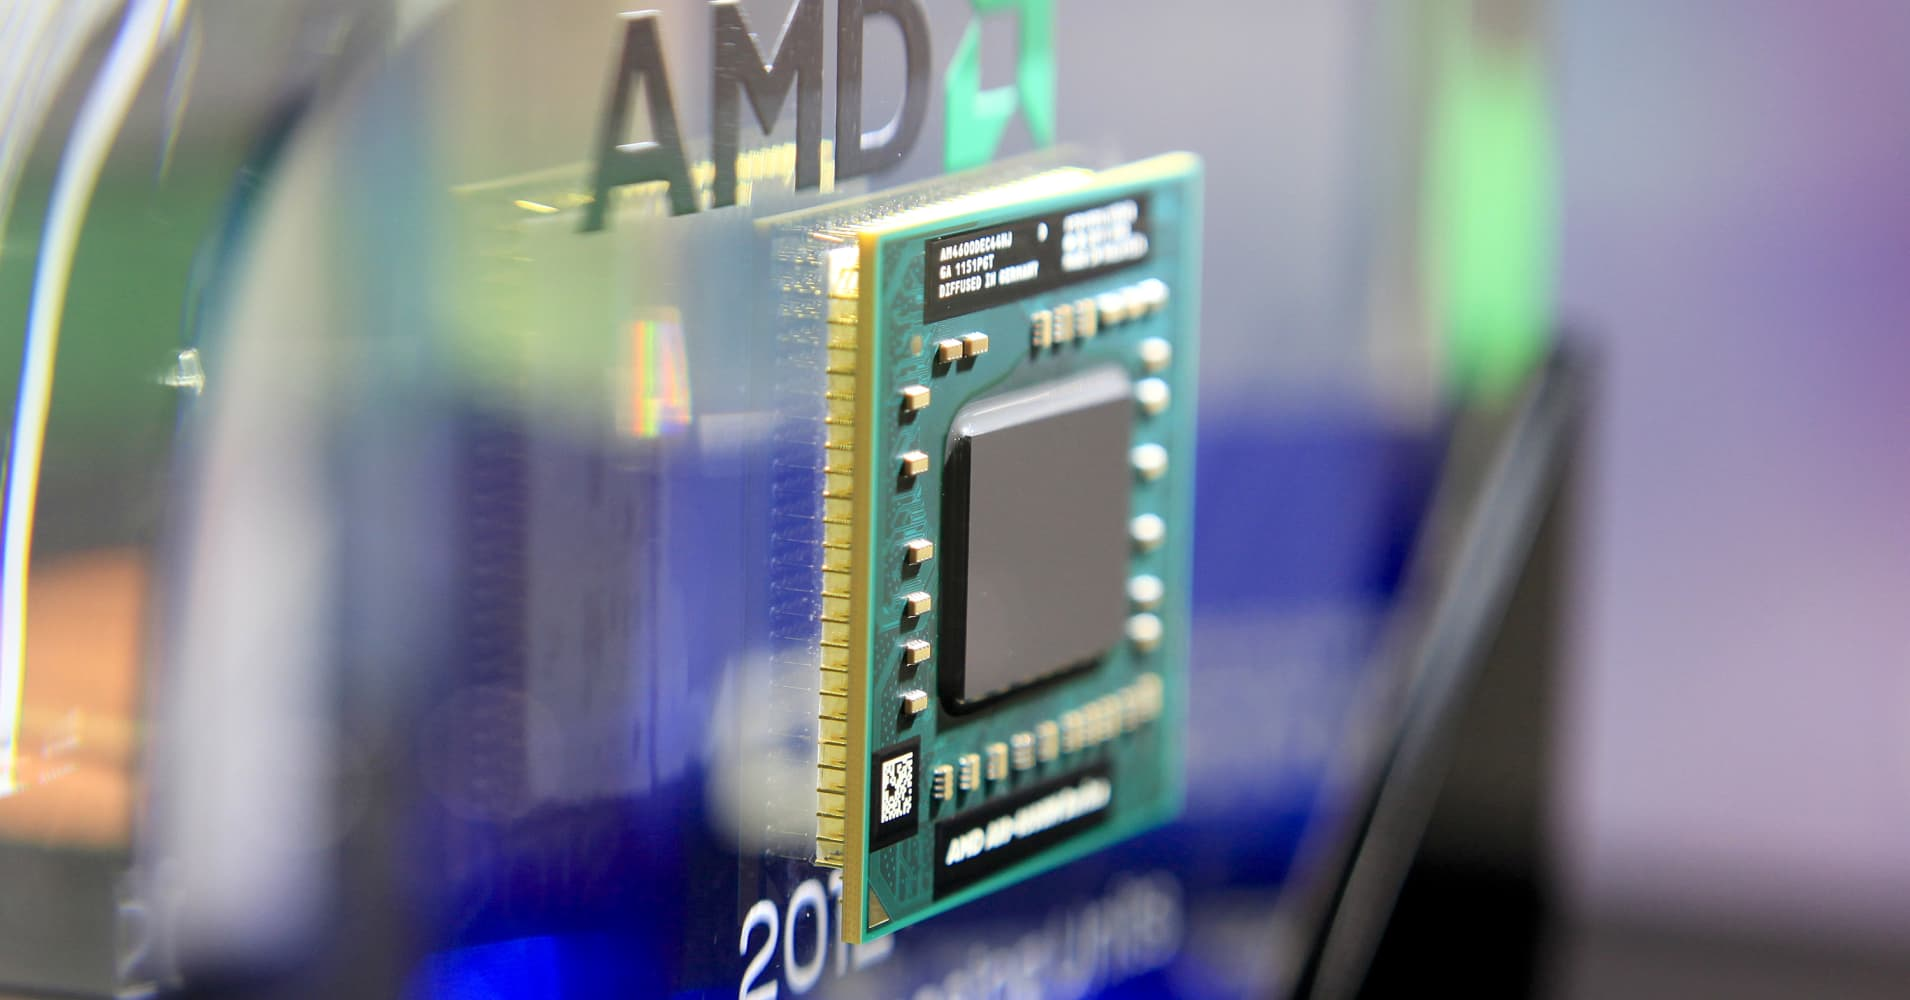 AMD stock drops 3 percent after the company says its chips are affected by security flaw